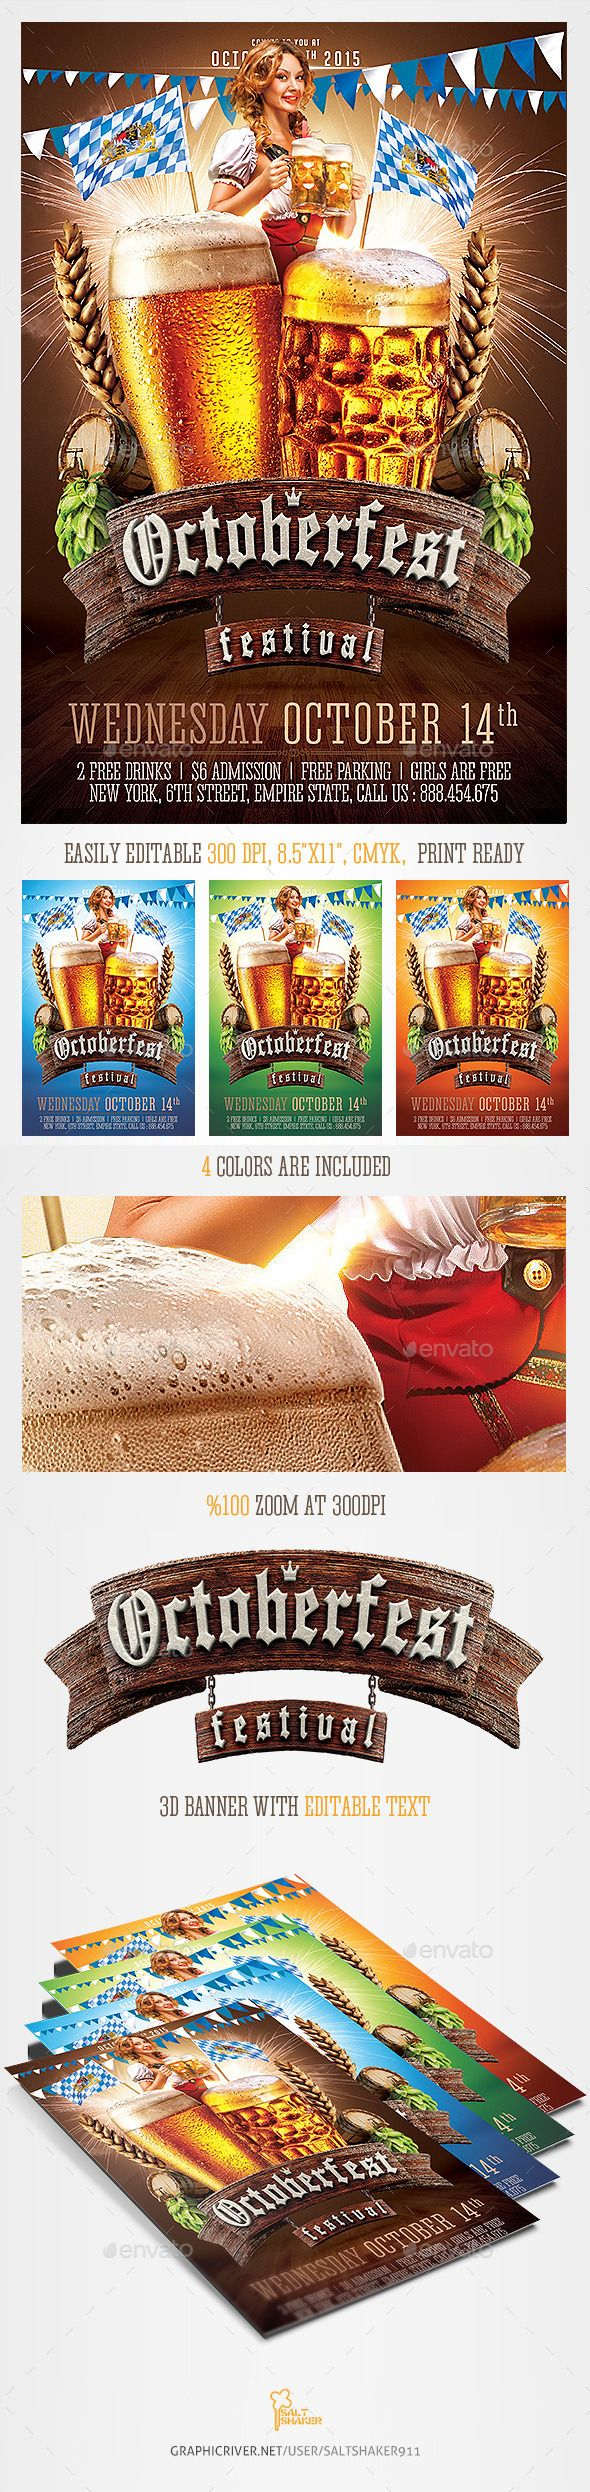 Oktoberfest Beer Festival Flyer Template - Clubs & Parties Events